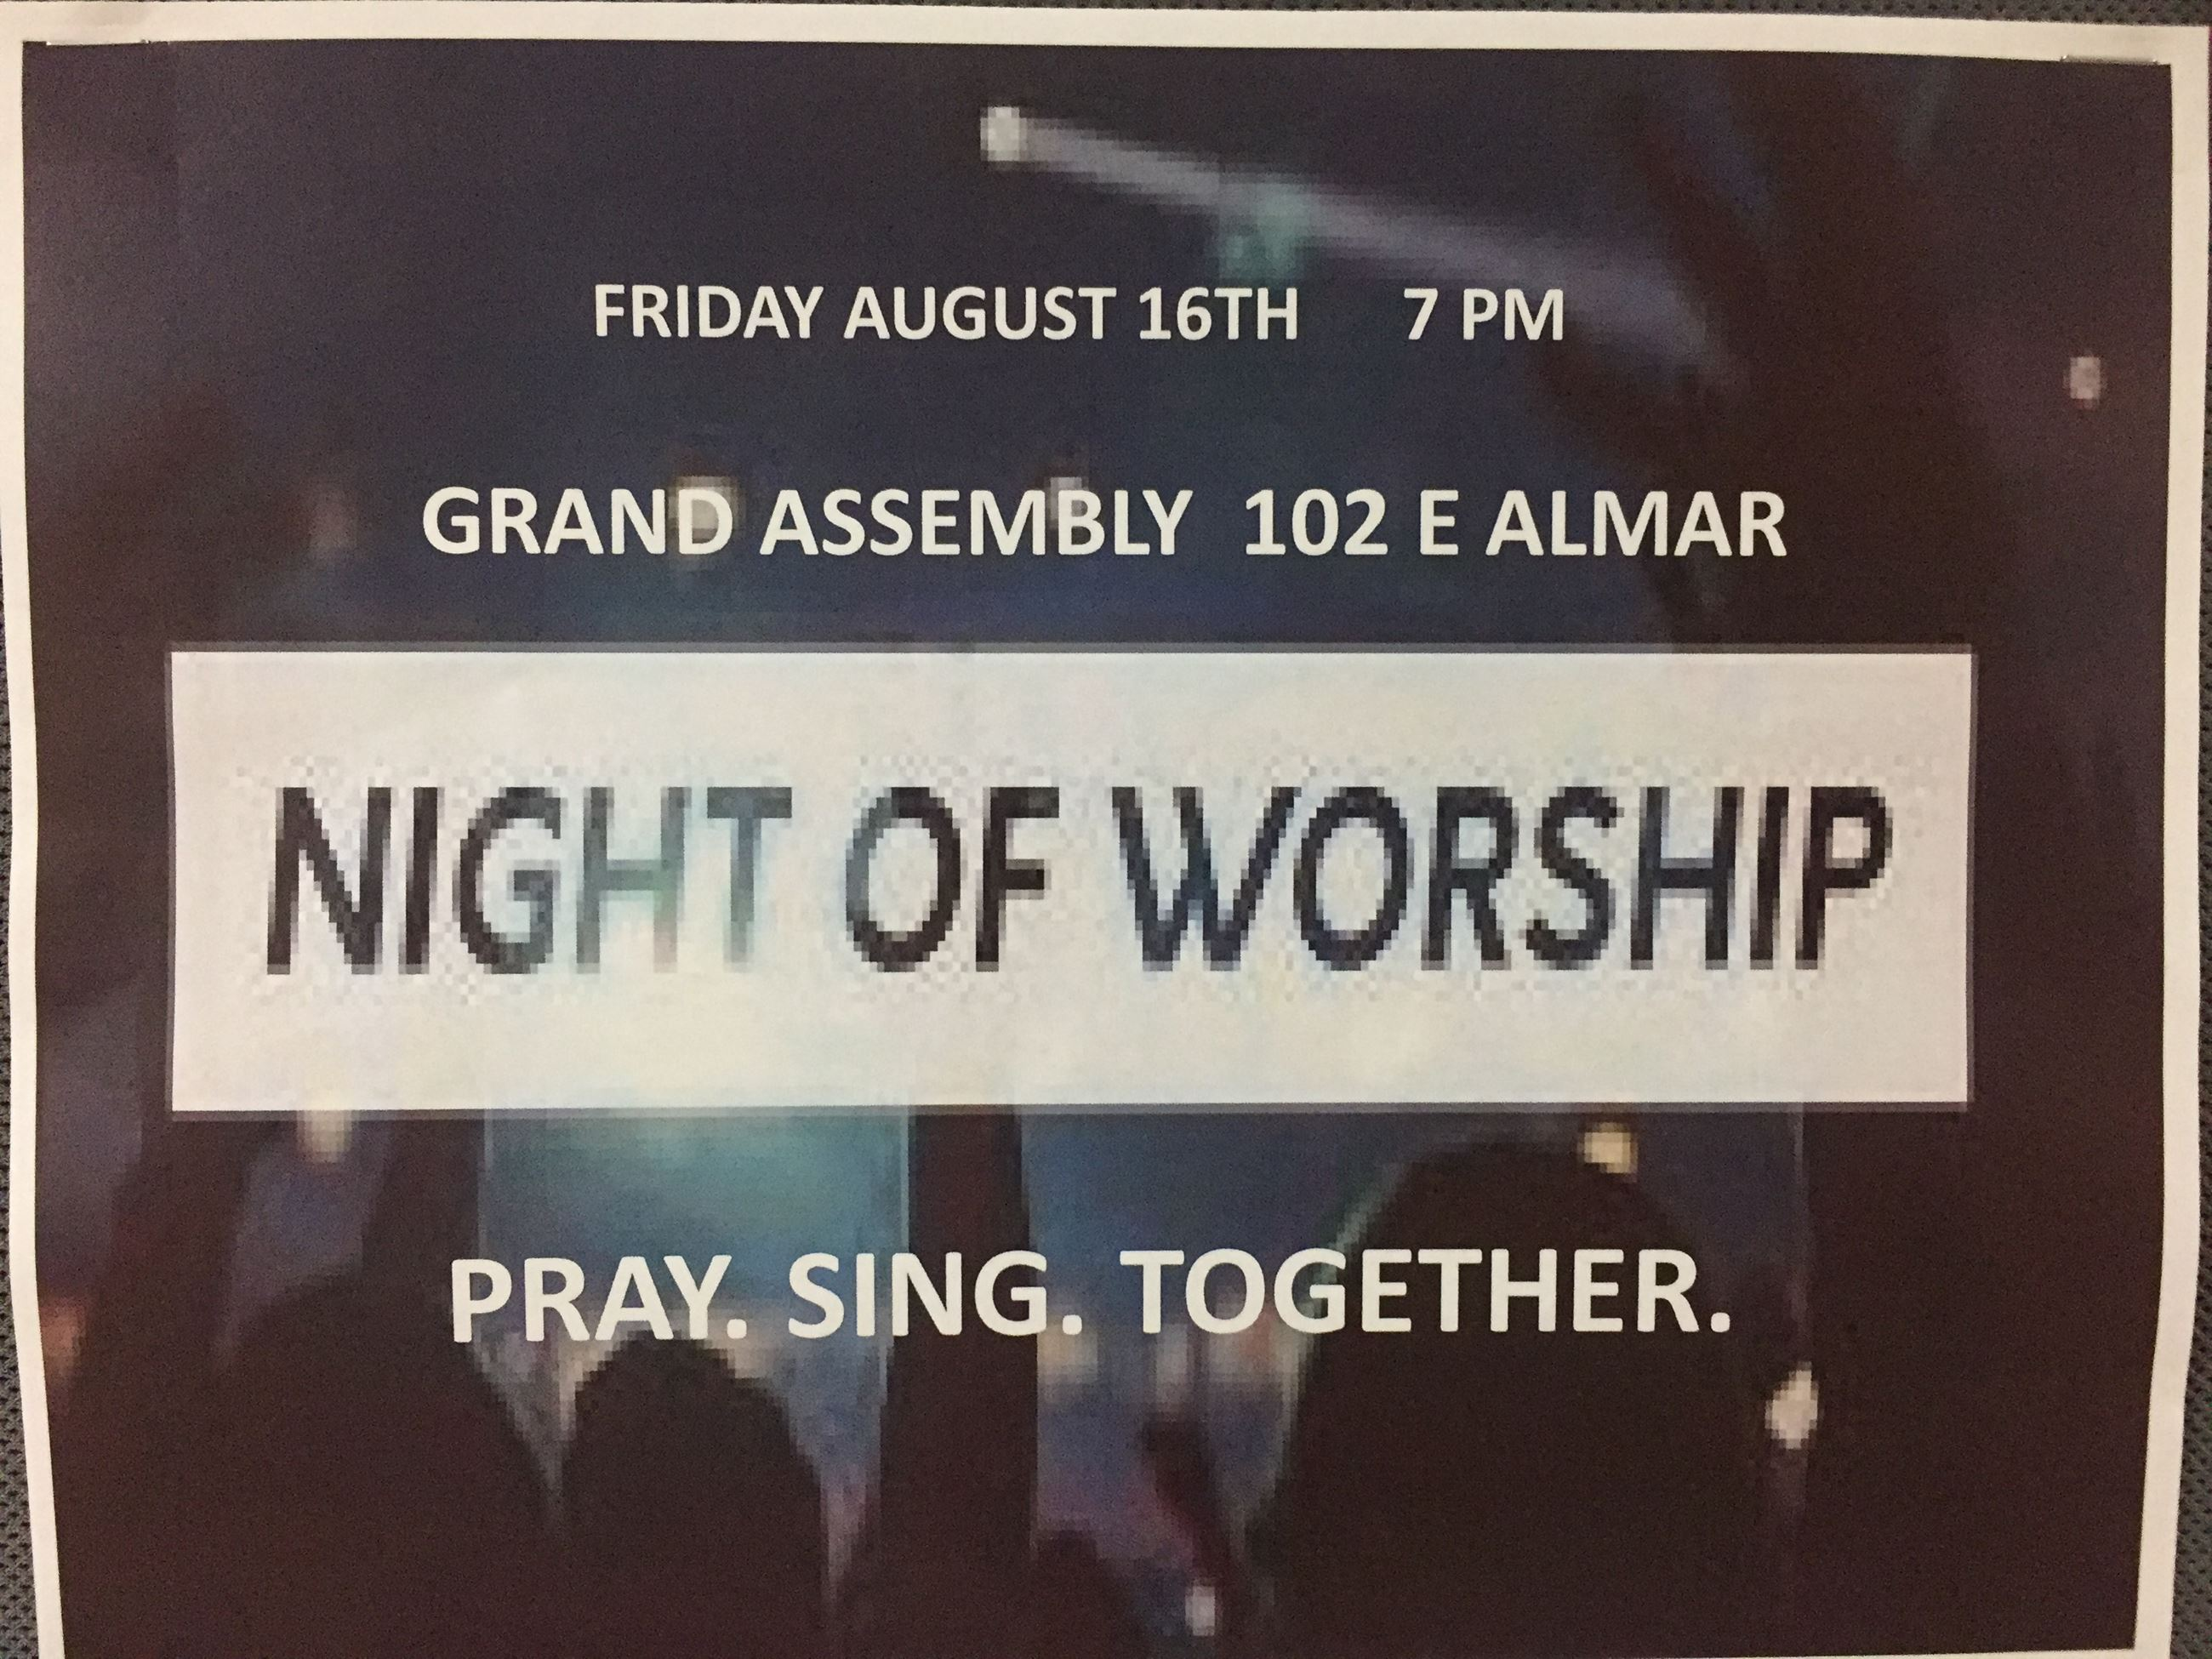 WORSHIP NIGHT FRIDAY AUG 16, 2019